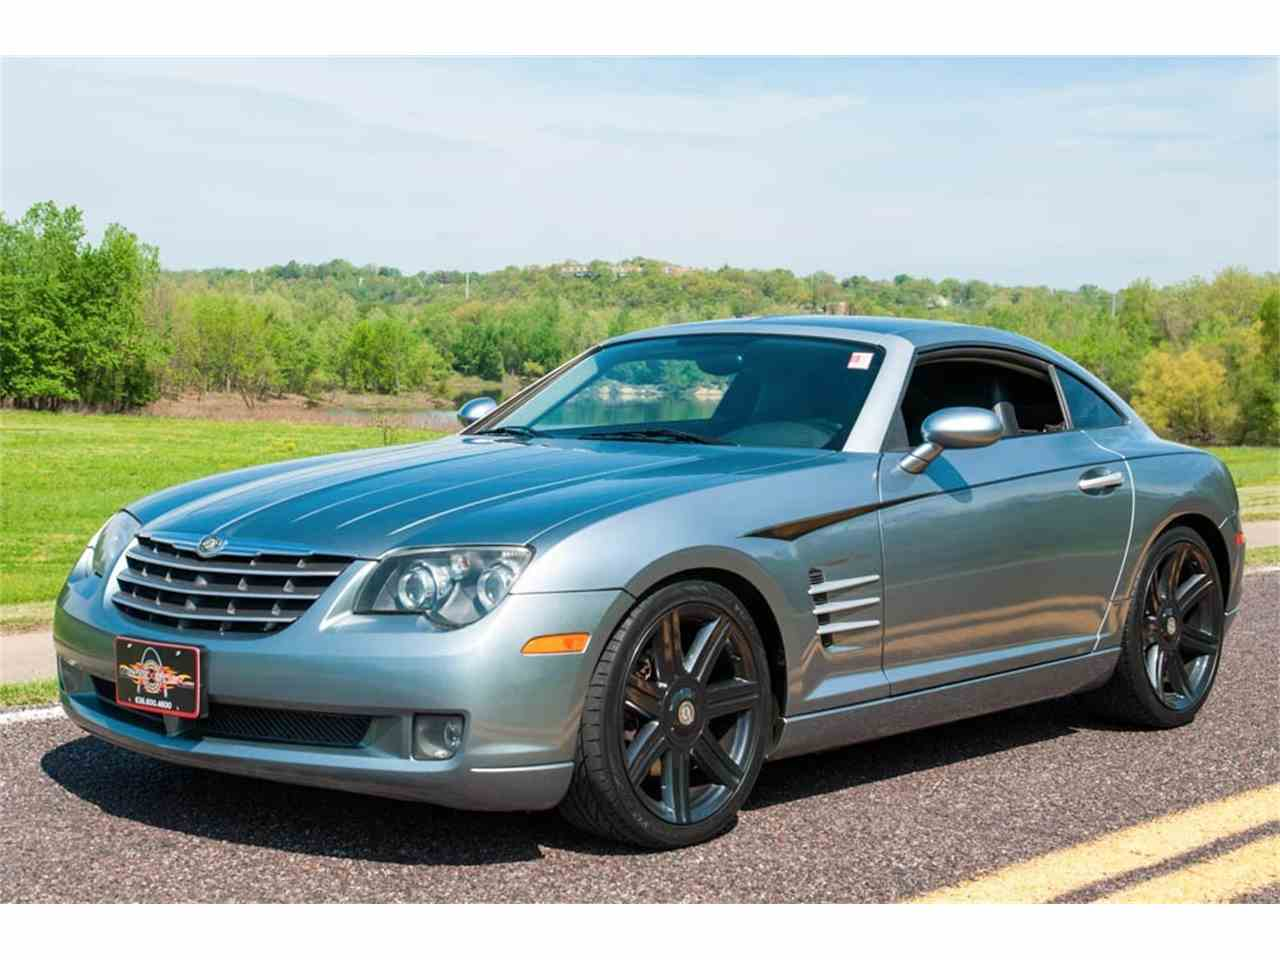 2004 chrysler crossfire for sale cc 977519. Black Bedroom Furniture Sets. Home Design Ideas